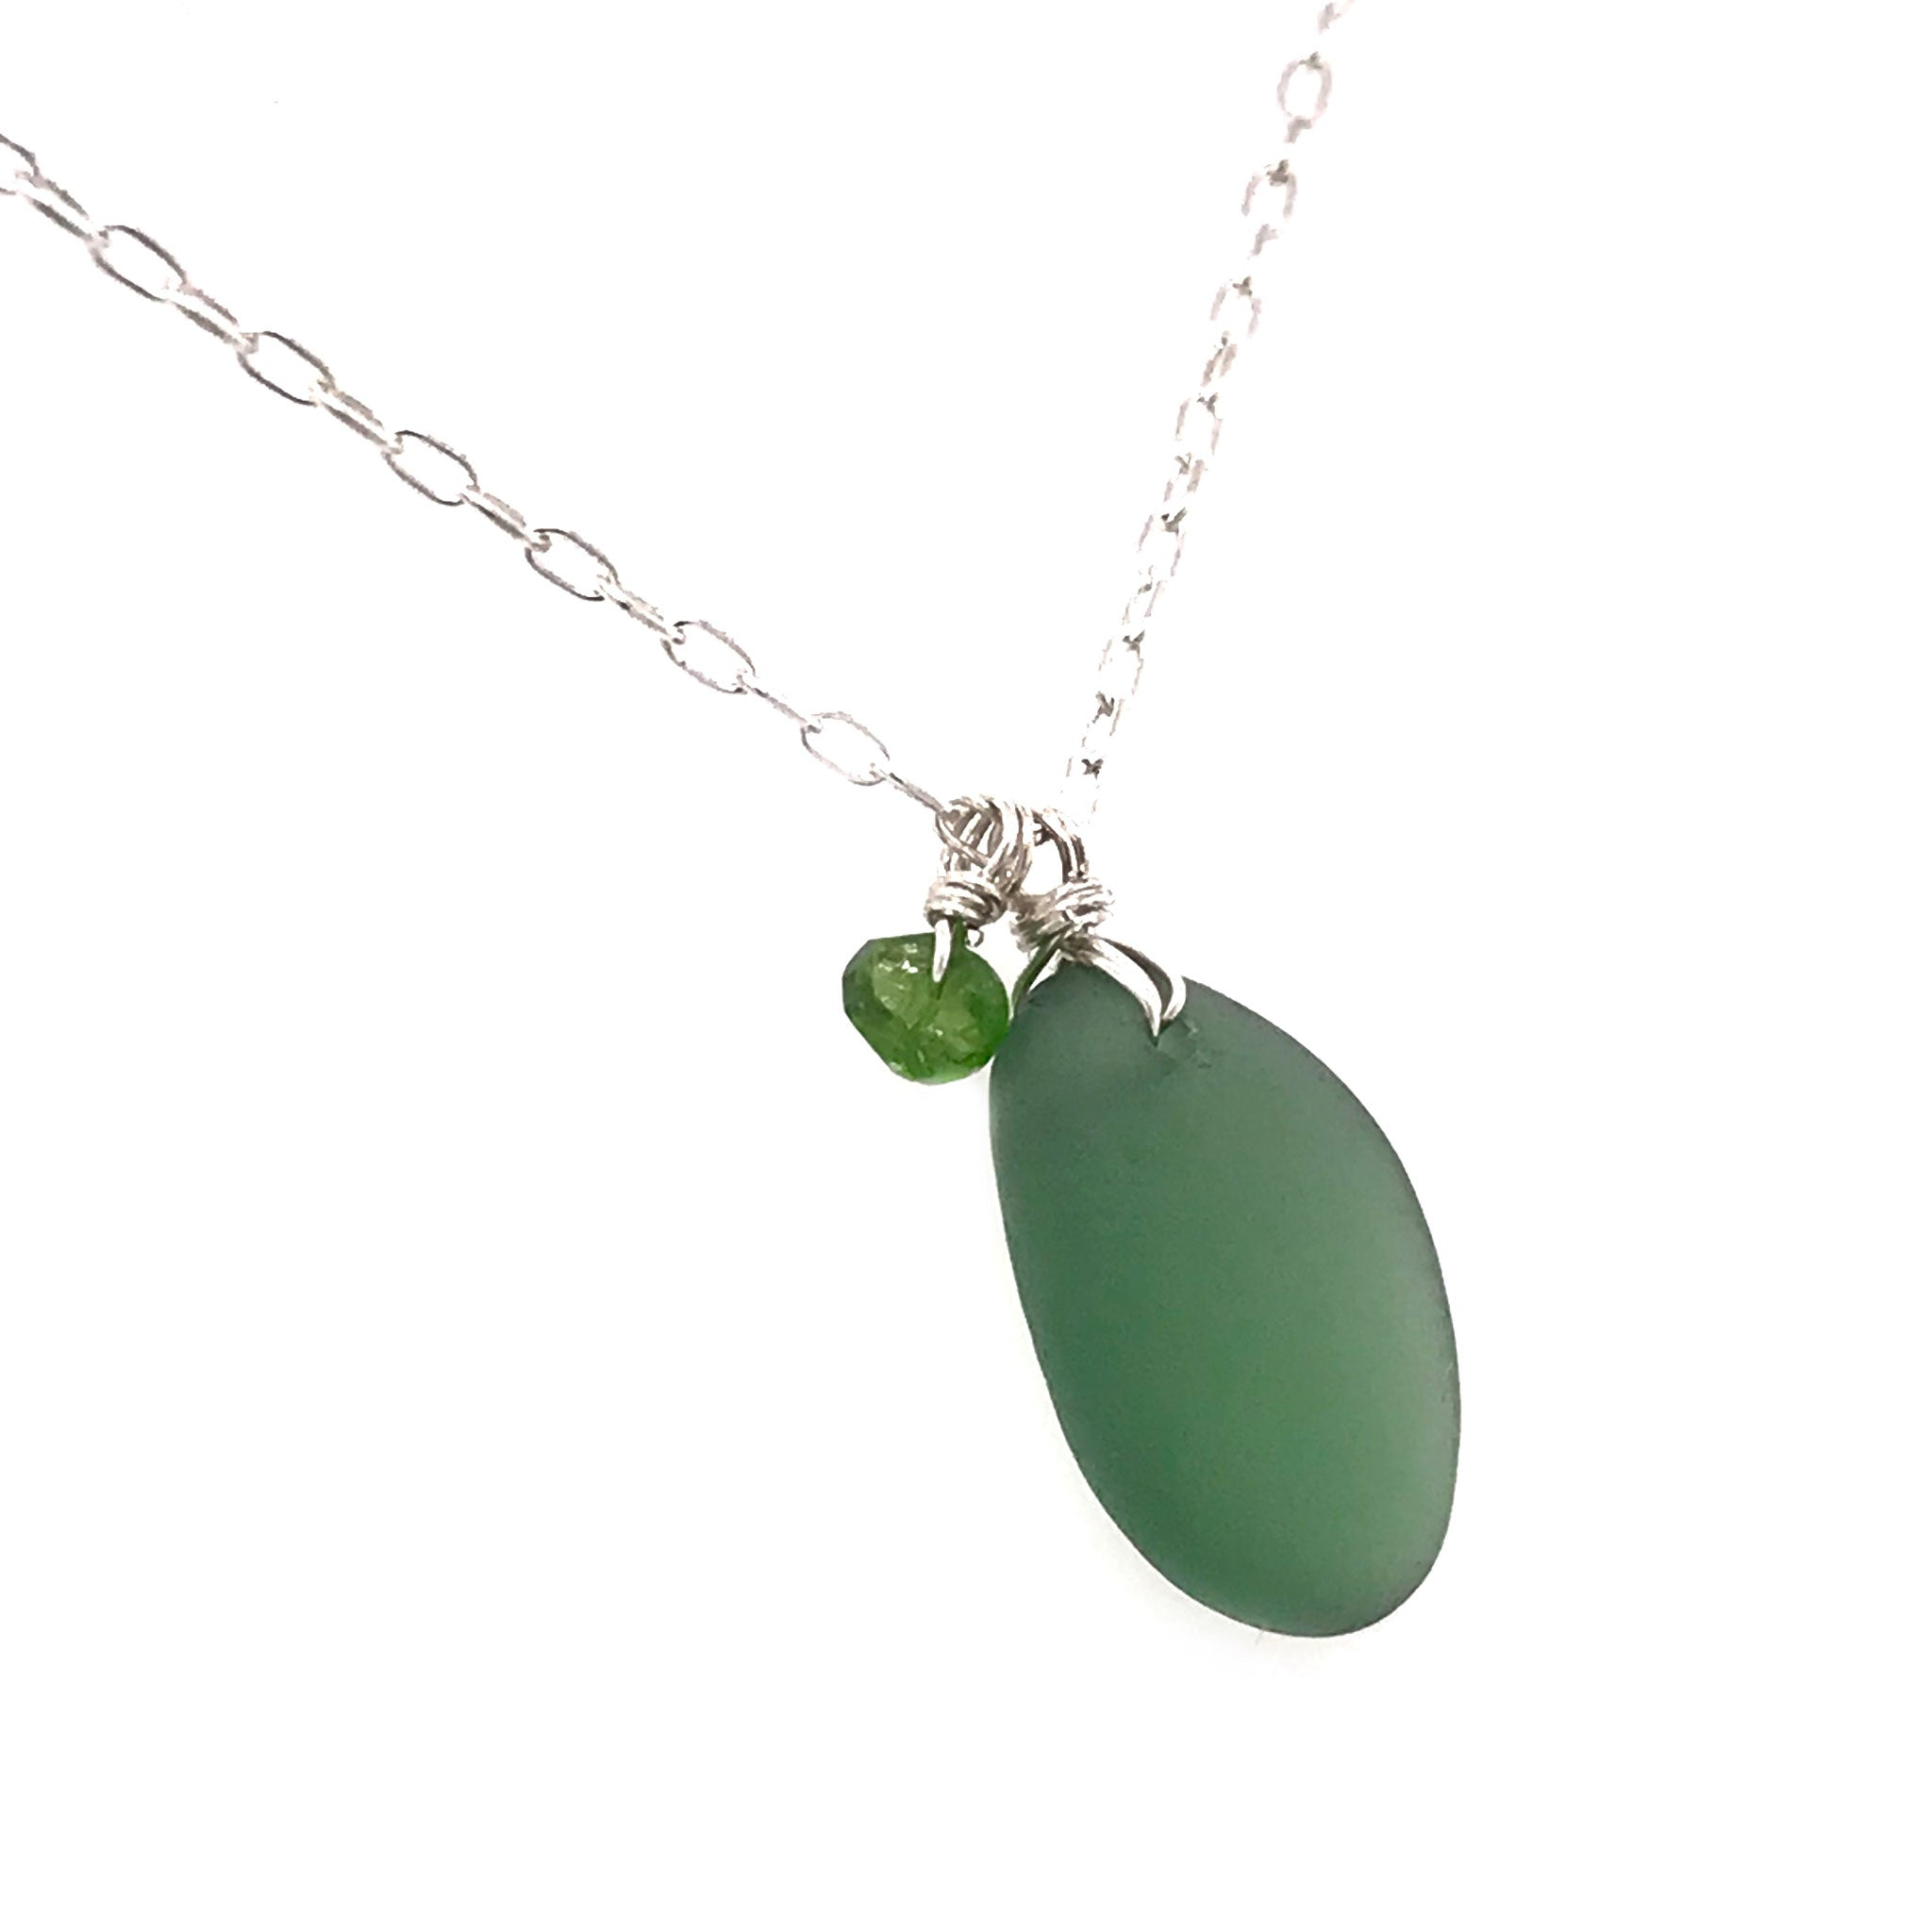 sterling silver necklace with green seaglass and tsavorite stones kriket Broadhurst jewellery